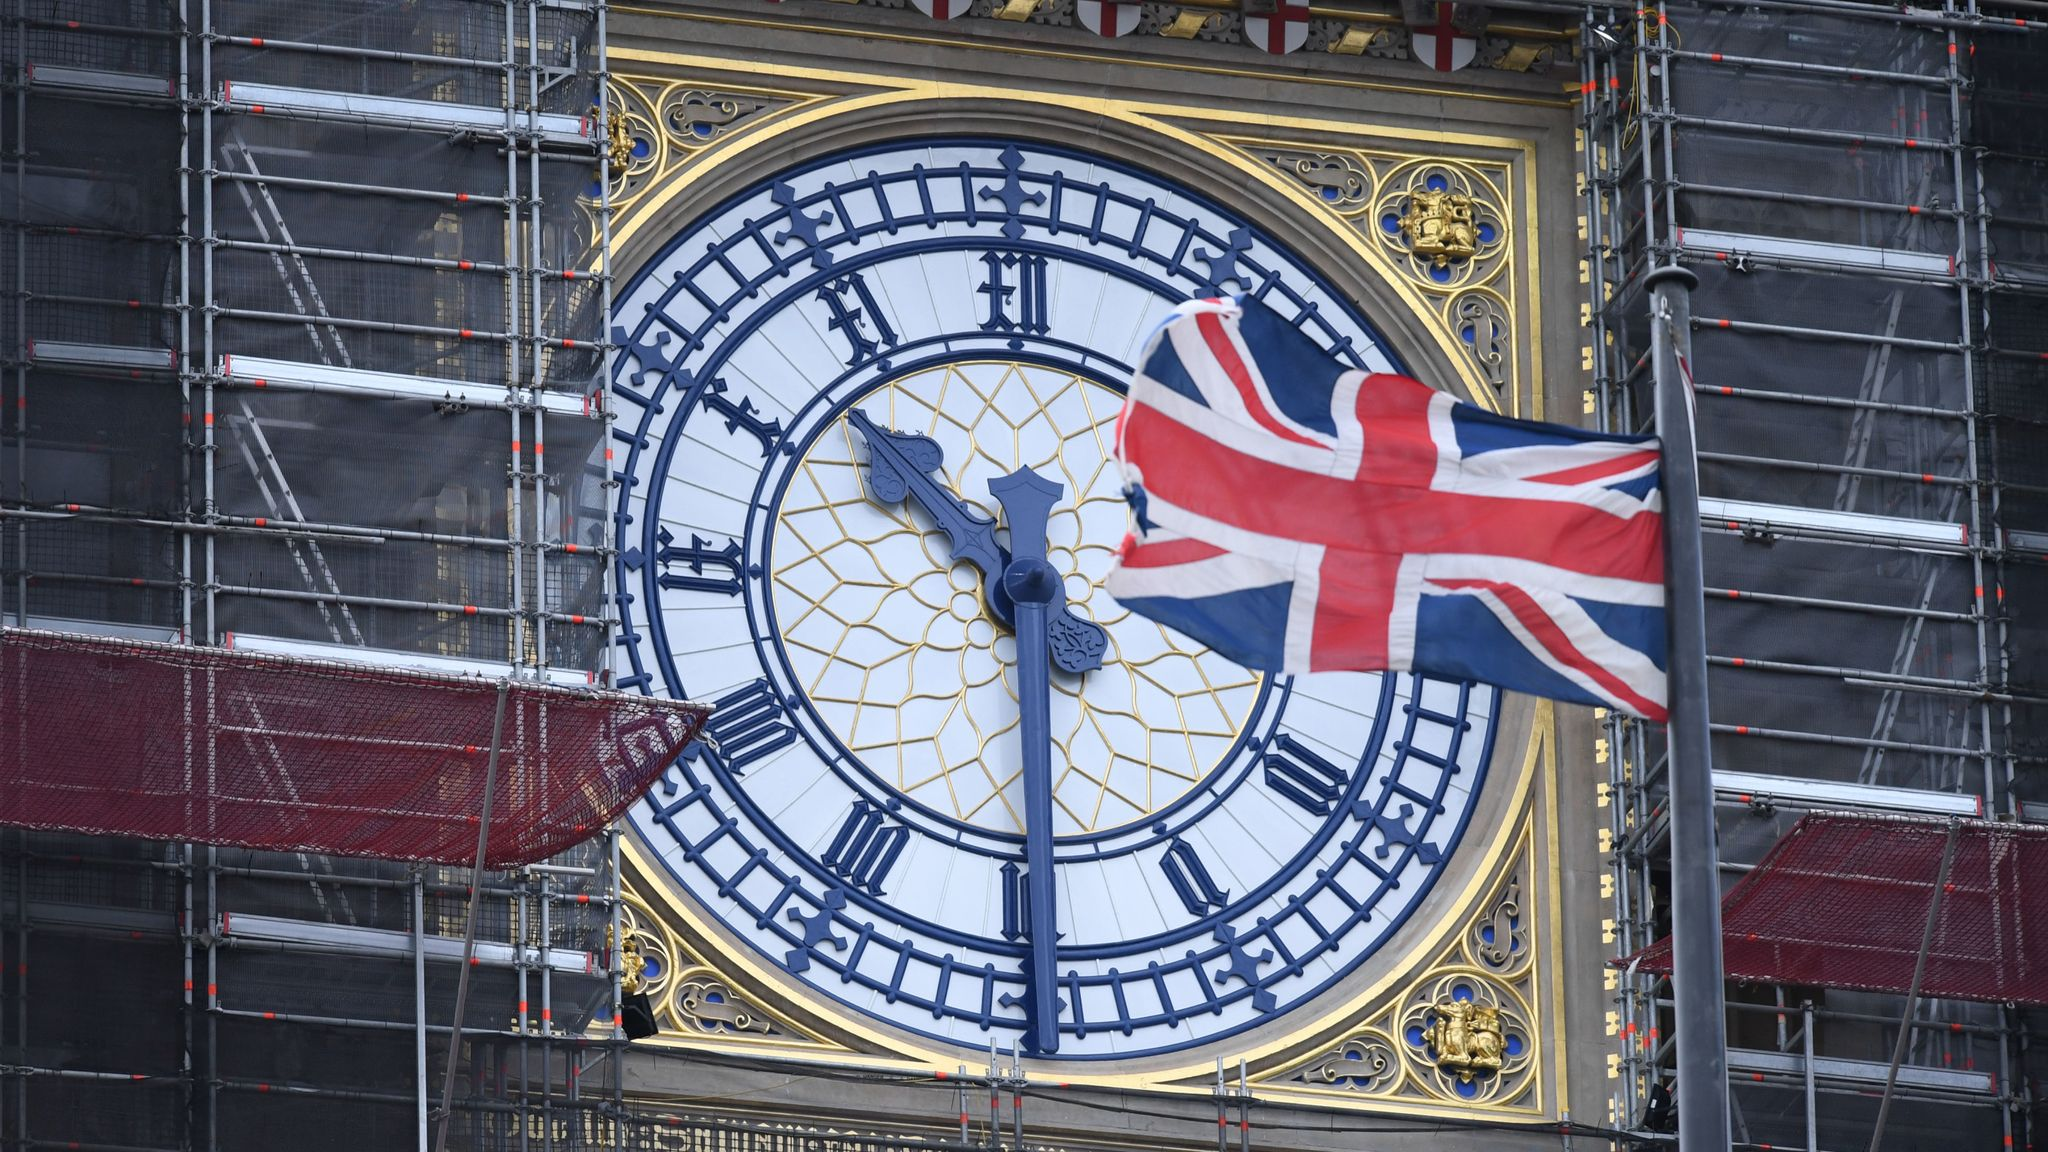 PM to give Brexit night speech - but there won't be any Big Ben bongs